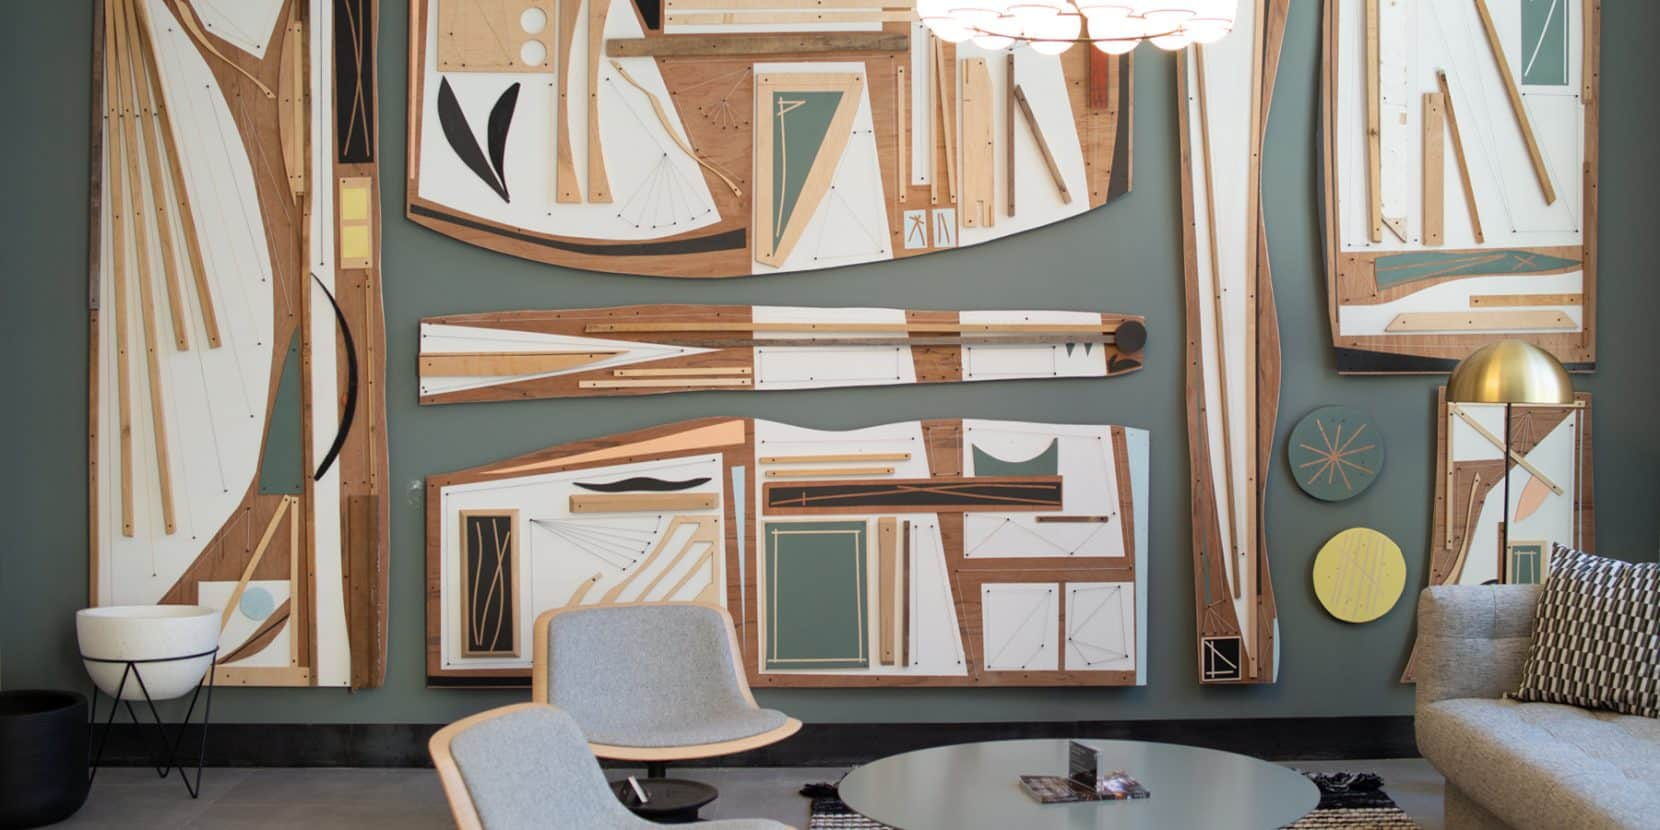 A sculptural mural by Hyland Mather graces the lobby of the Heid, a residential building in the city's Callowhill area